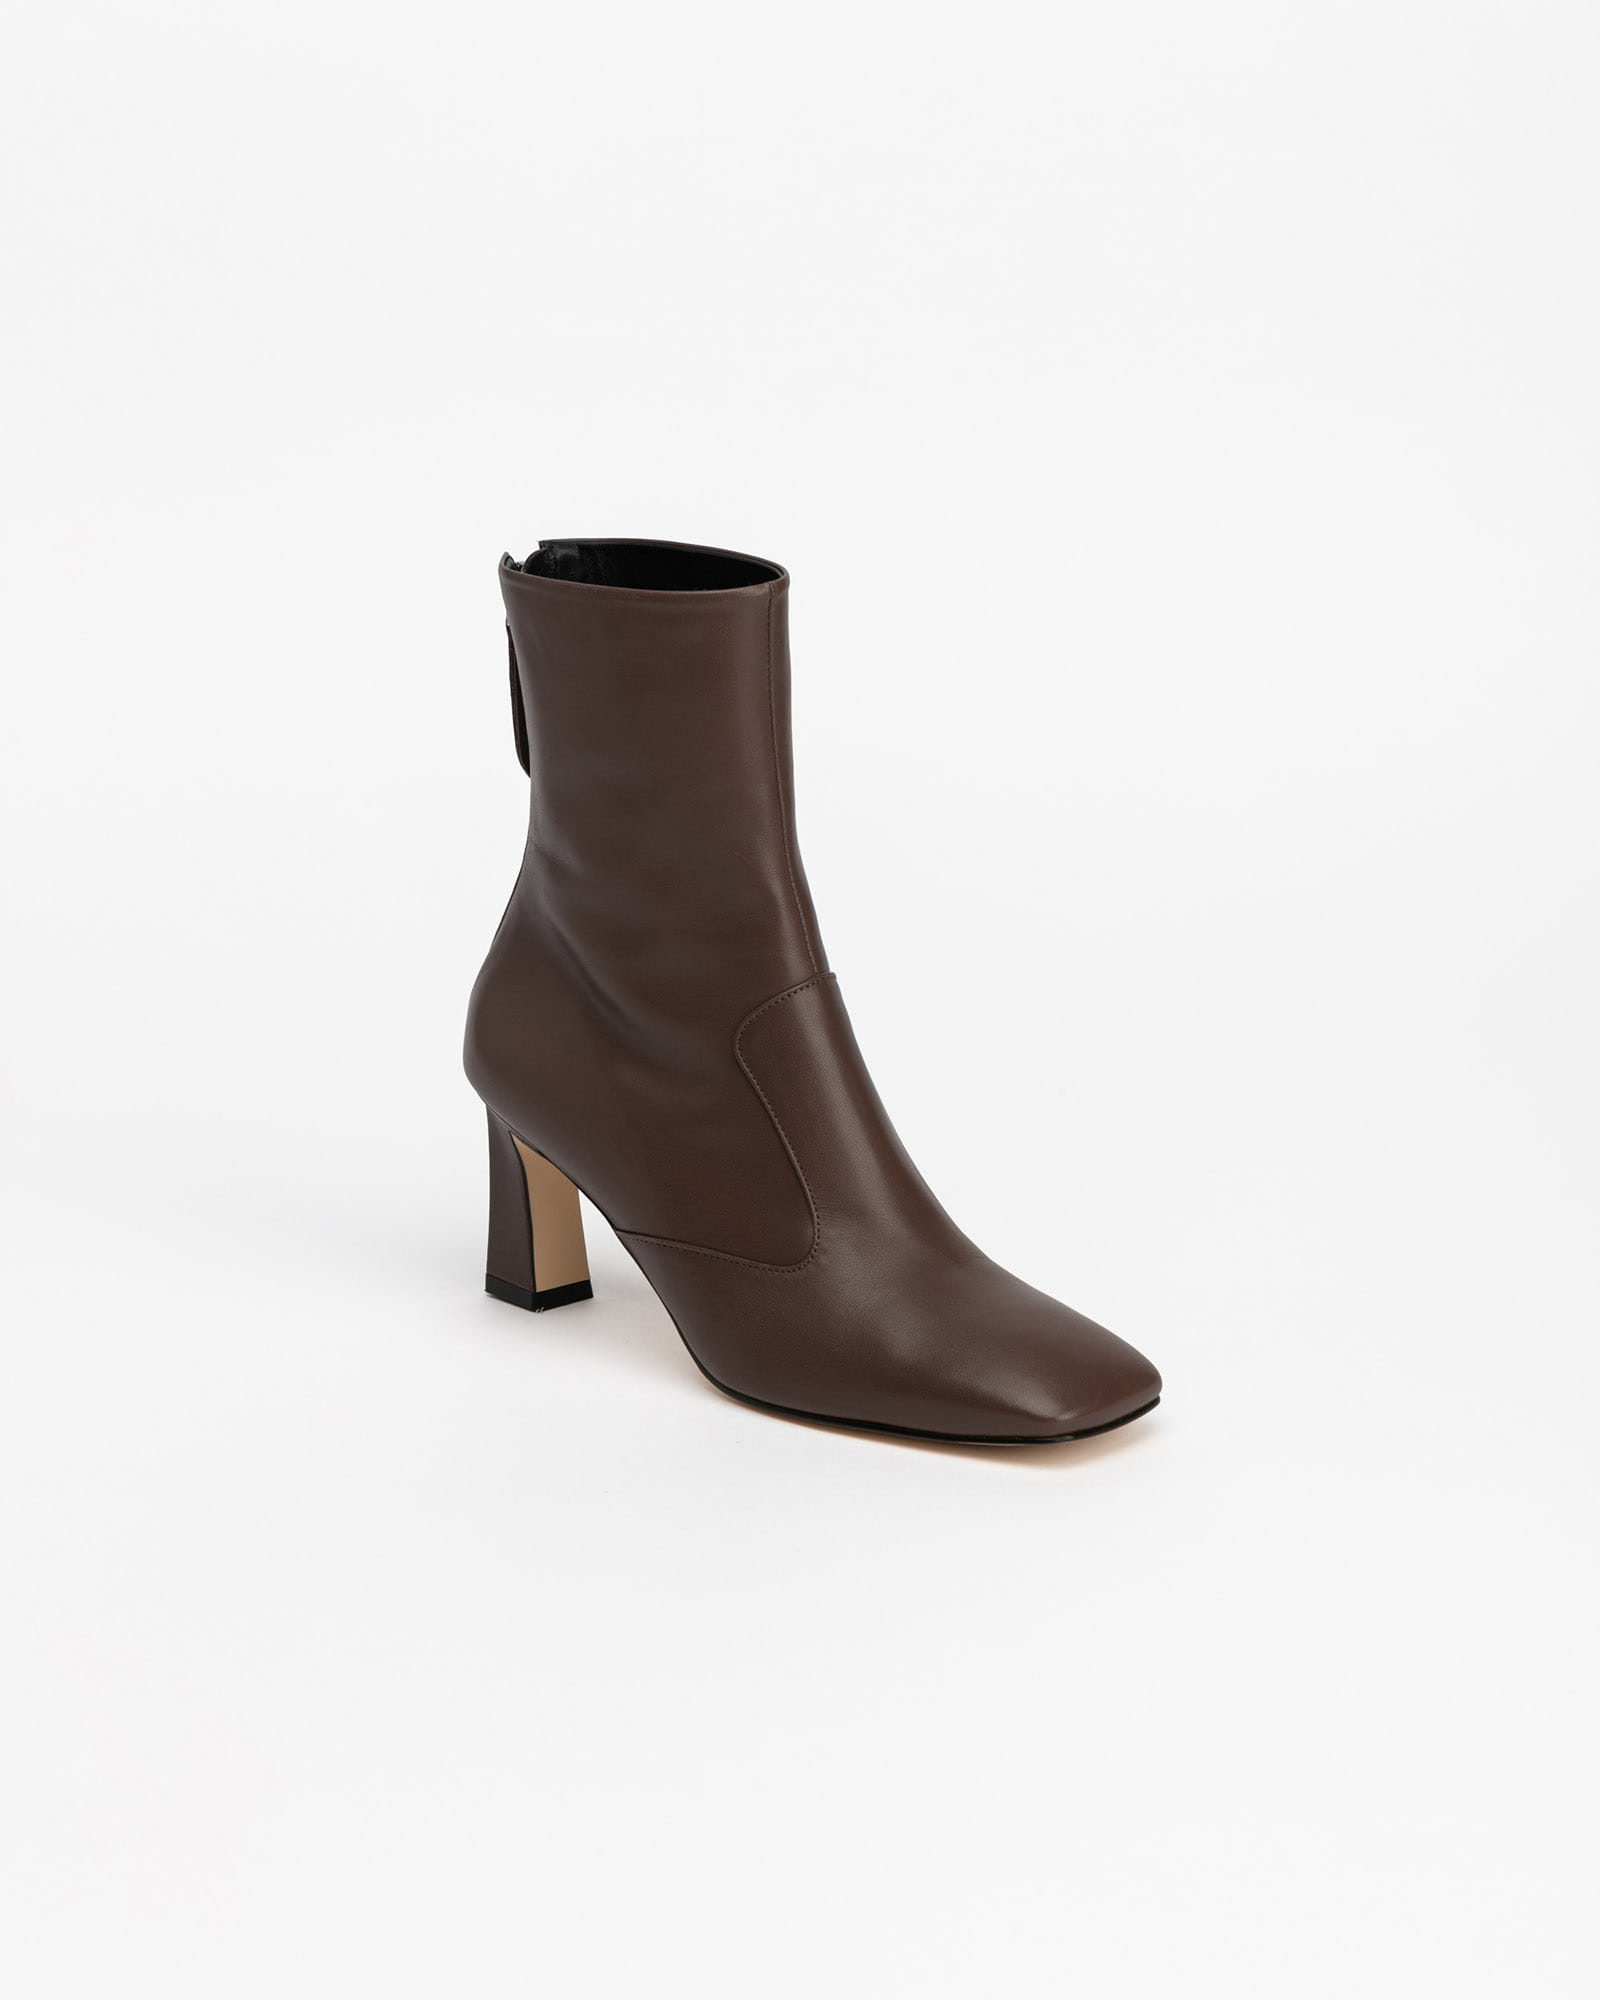 Elisa Boots in Roast Brown